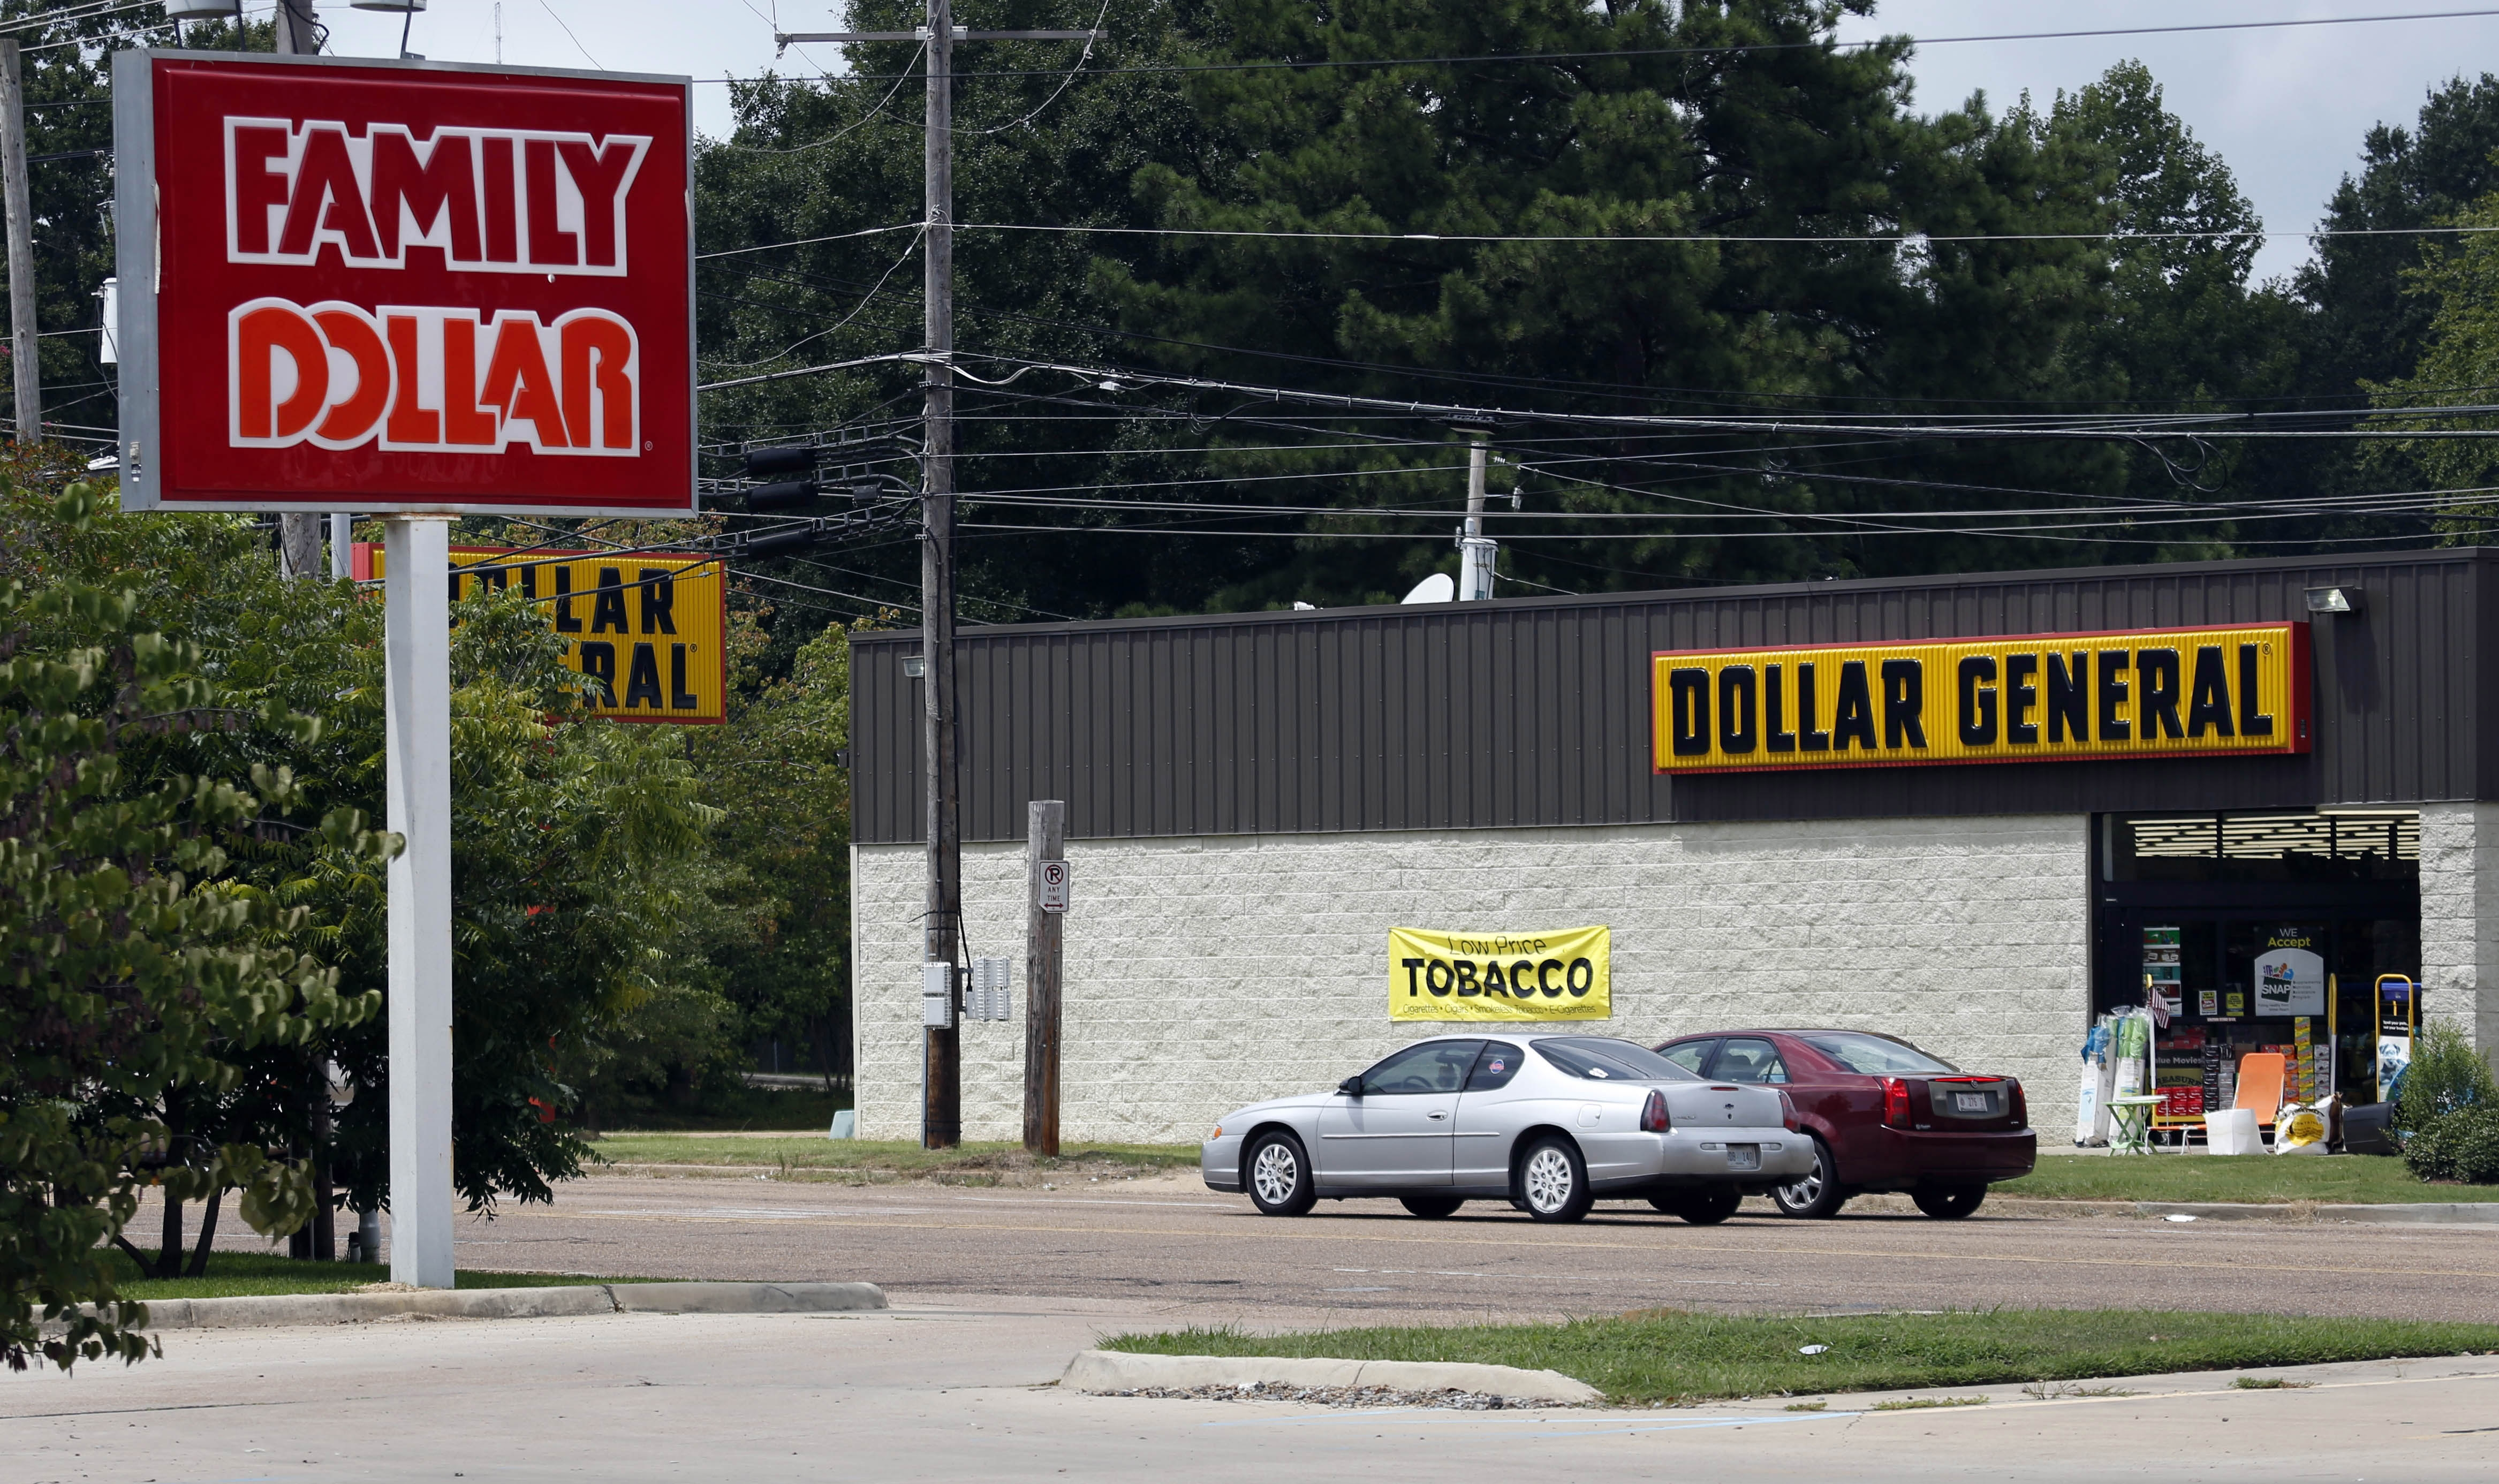 Family Dollar CEO Howard R. Levine says that after reviewing Dollar General offer, board found completion of the deal unlikely.